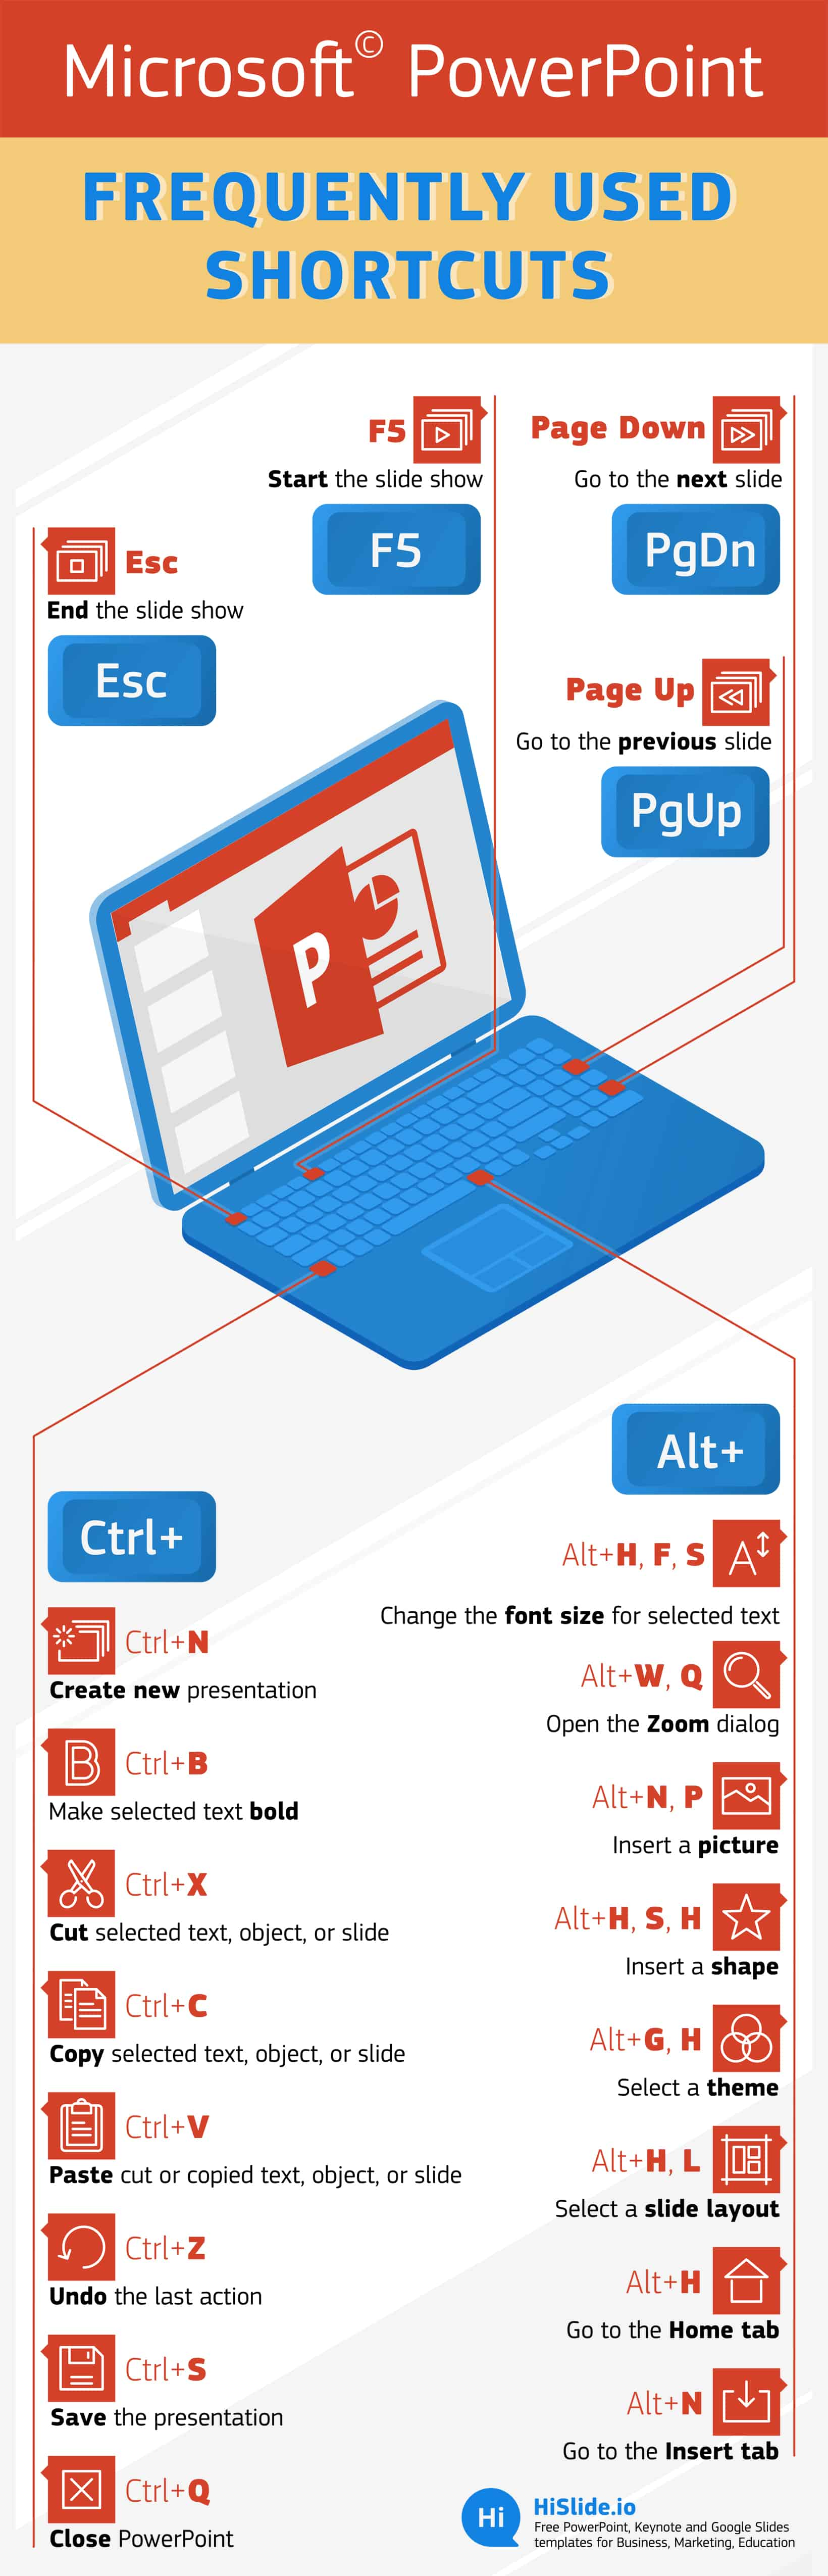 Microsoft PowerPoint Frequently Used Shortcuts